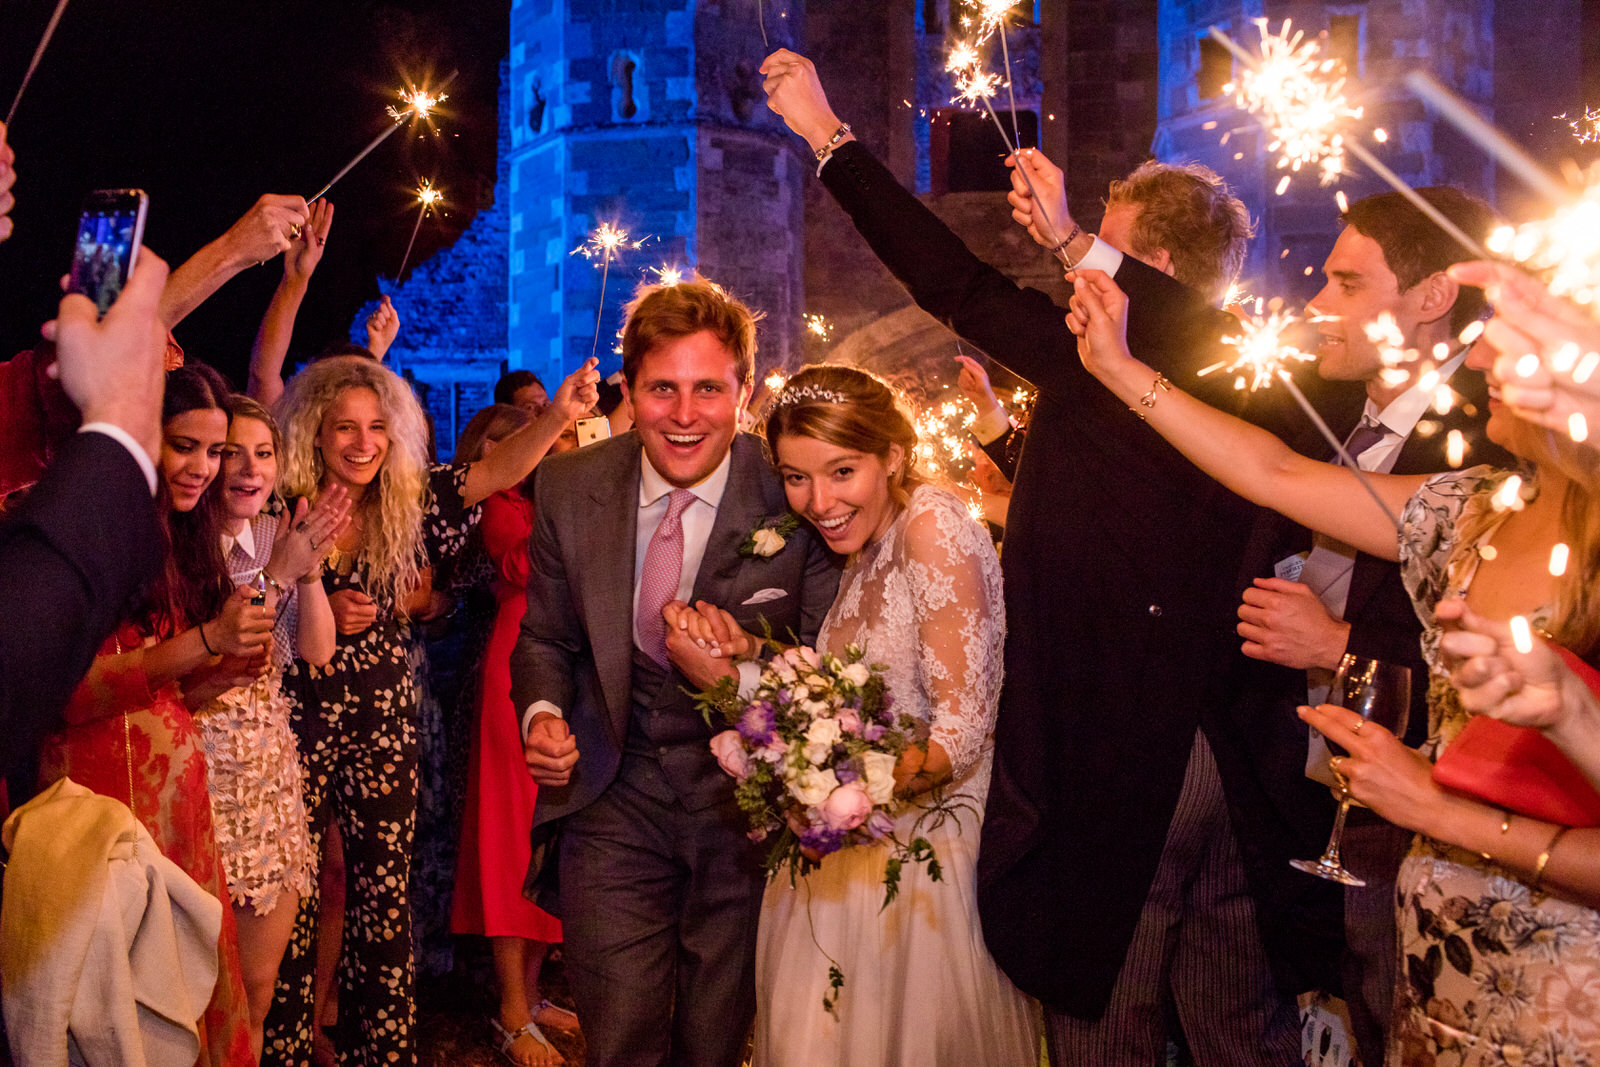 winter wedding idea with sparkler exit